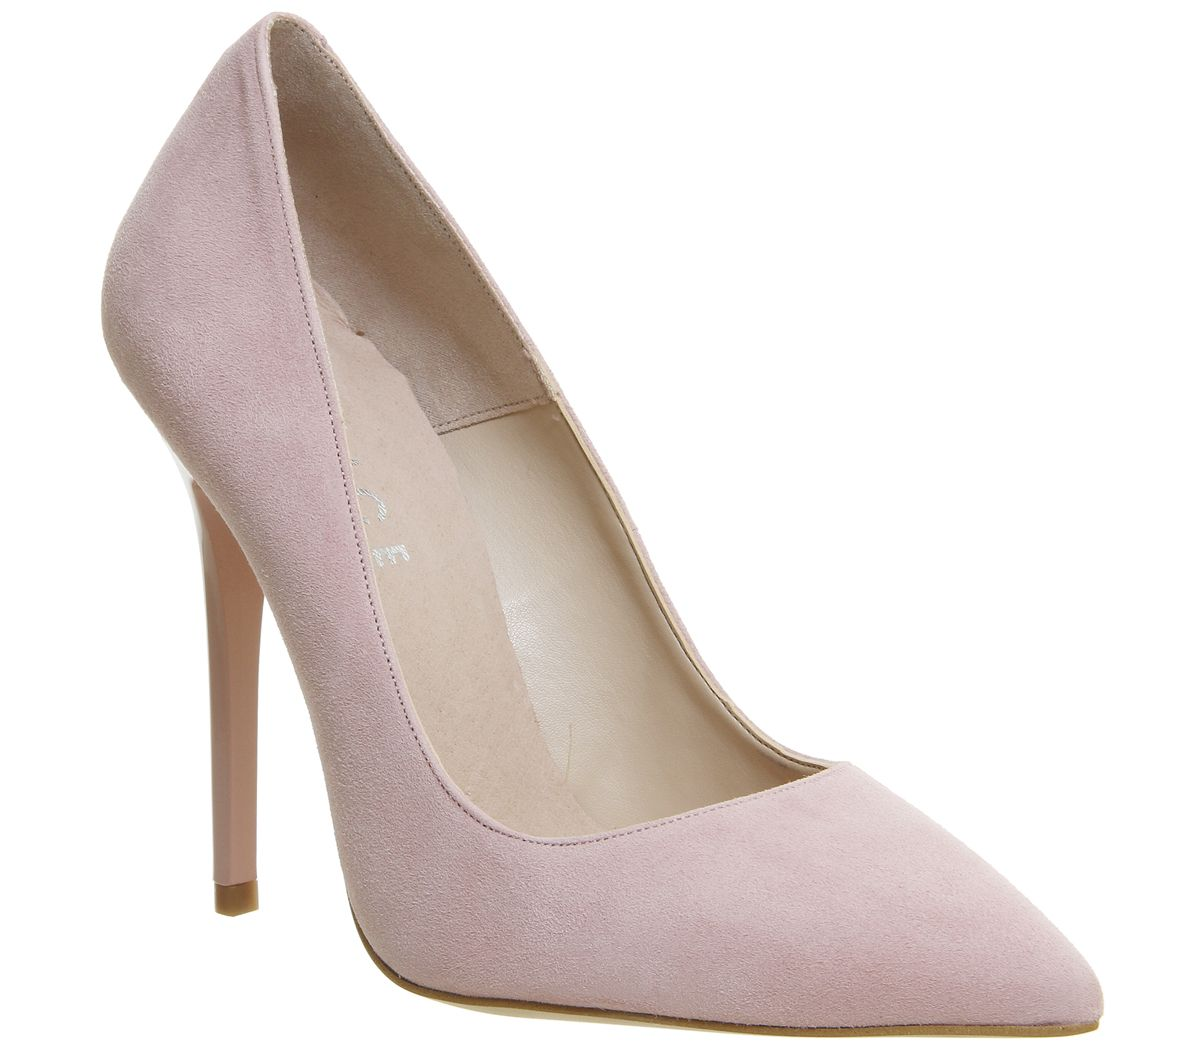 0e117f9b8f Office On To Point Court Heels Light Pink Kid Suede - High Heels